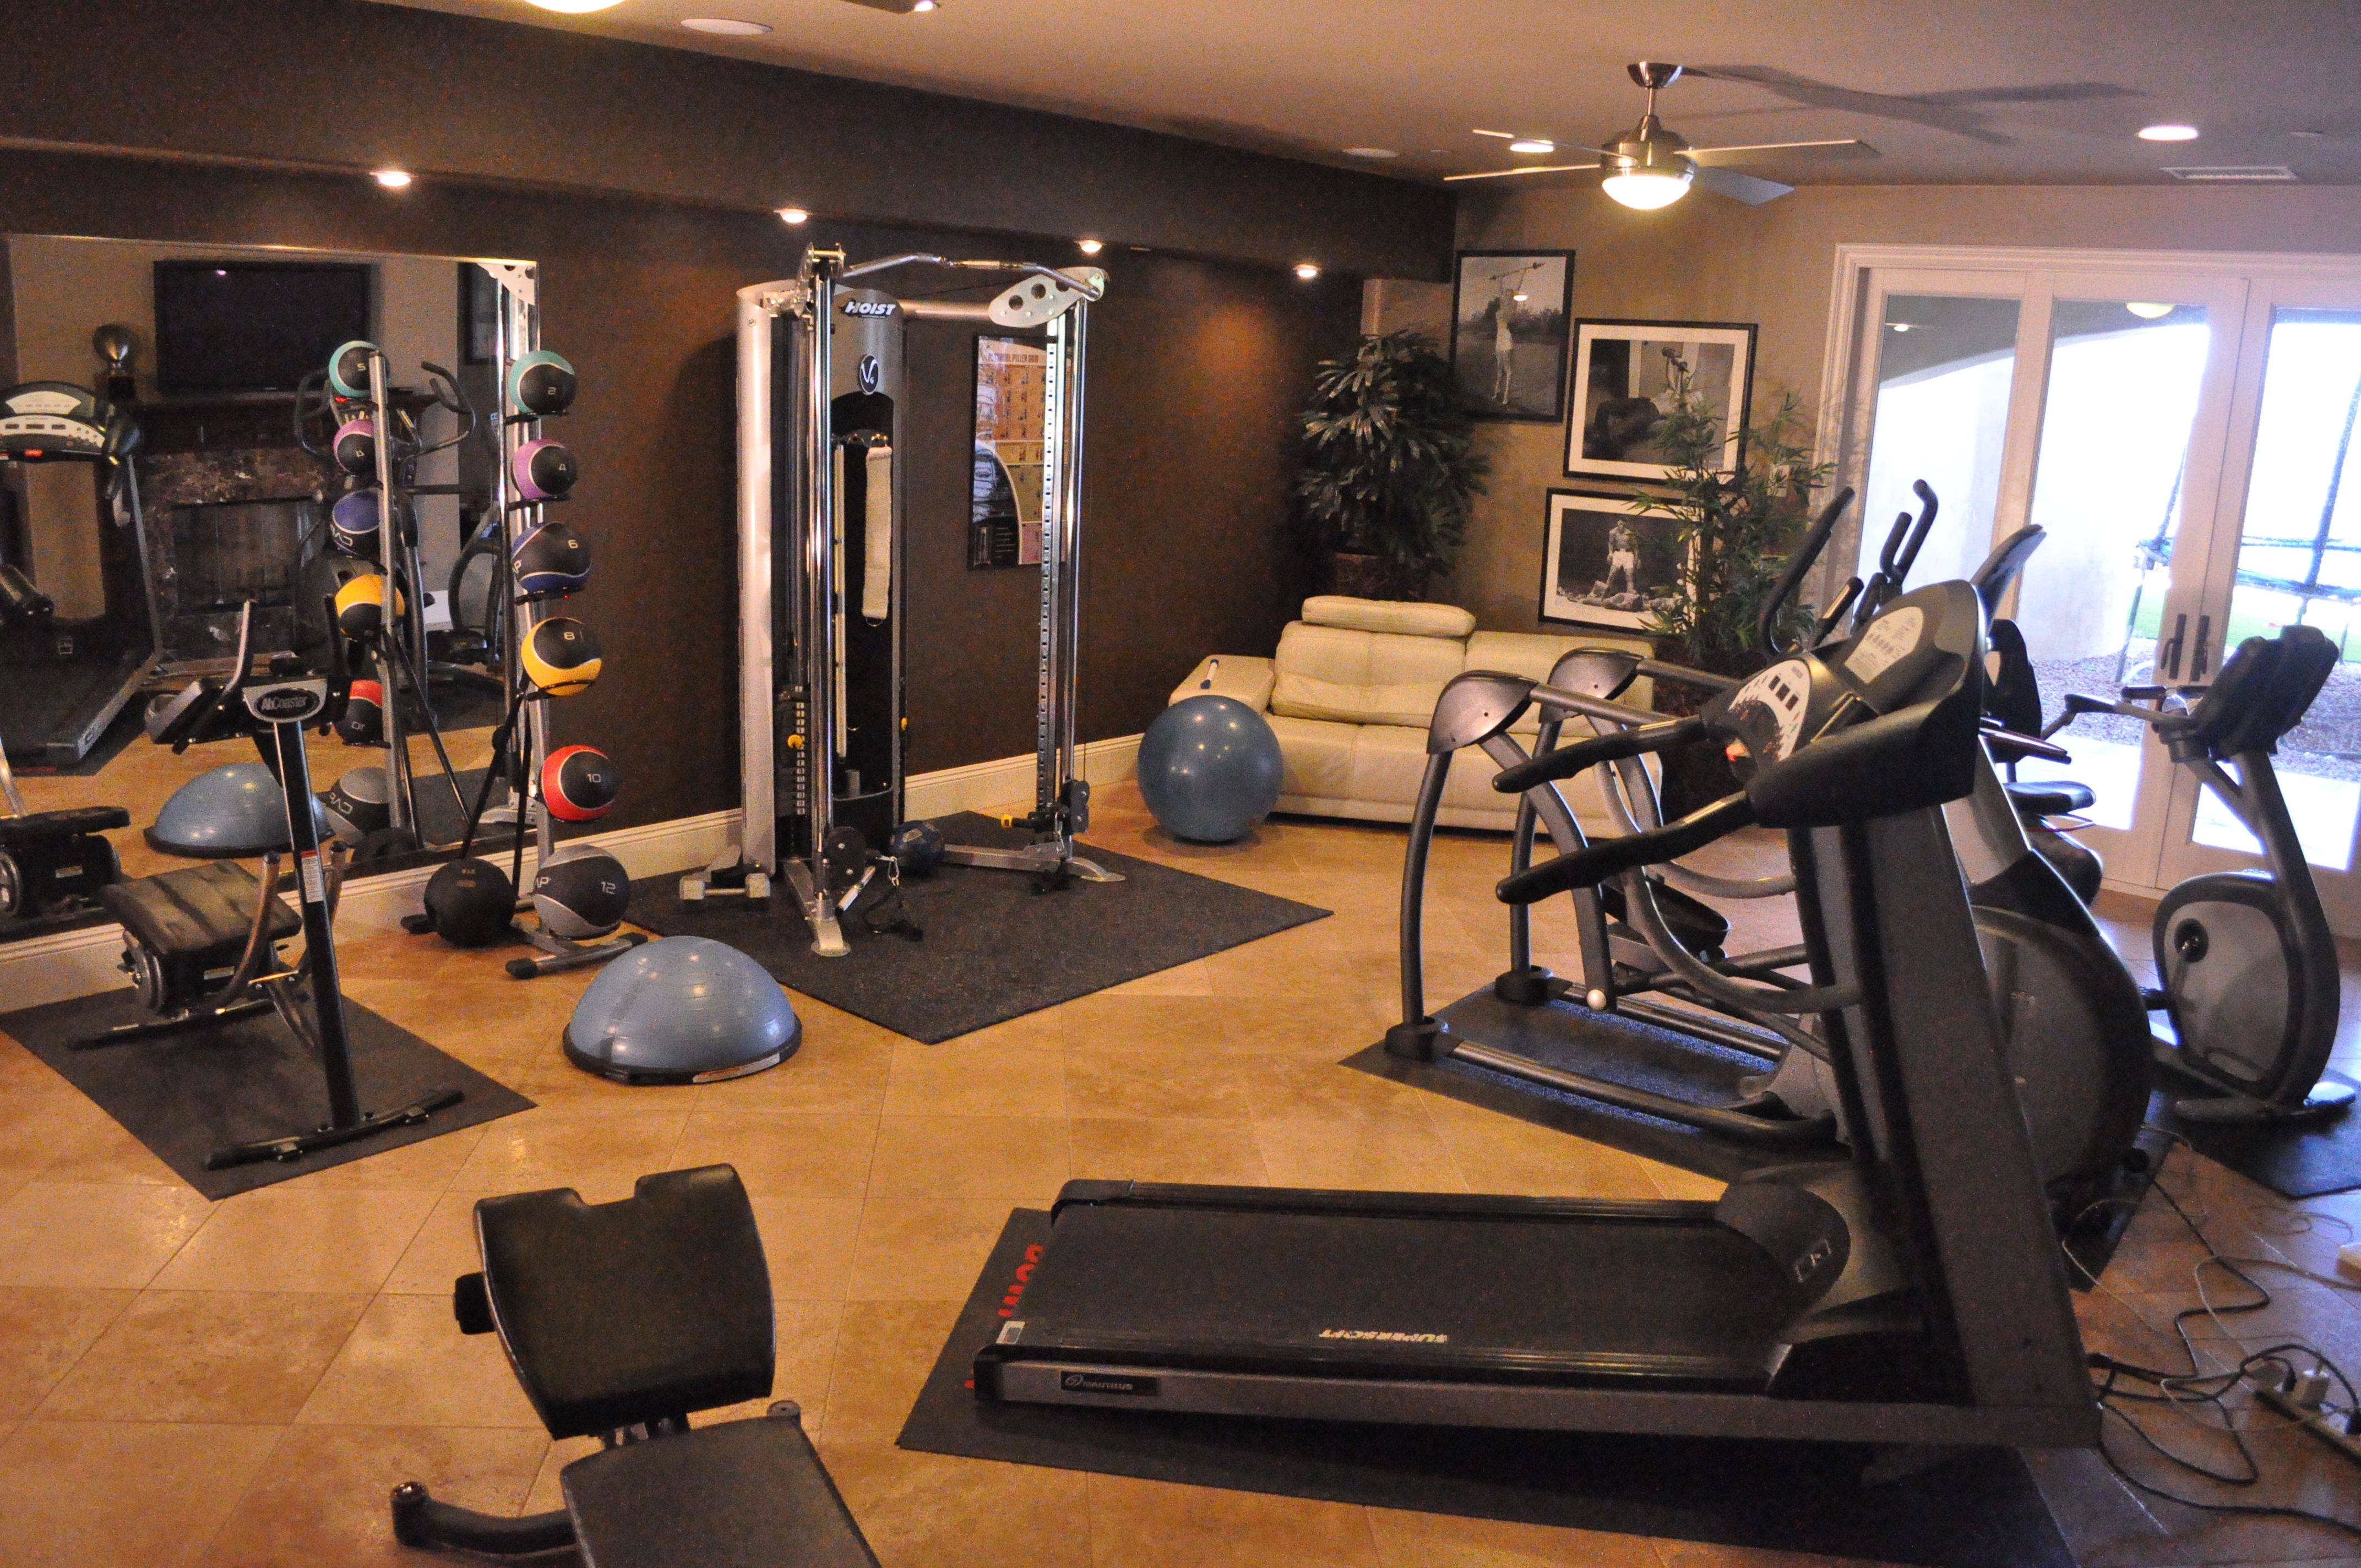 58 Awesome Ideas For Your Home Gym It's Time For Workout Gym